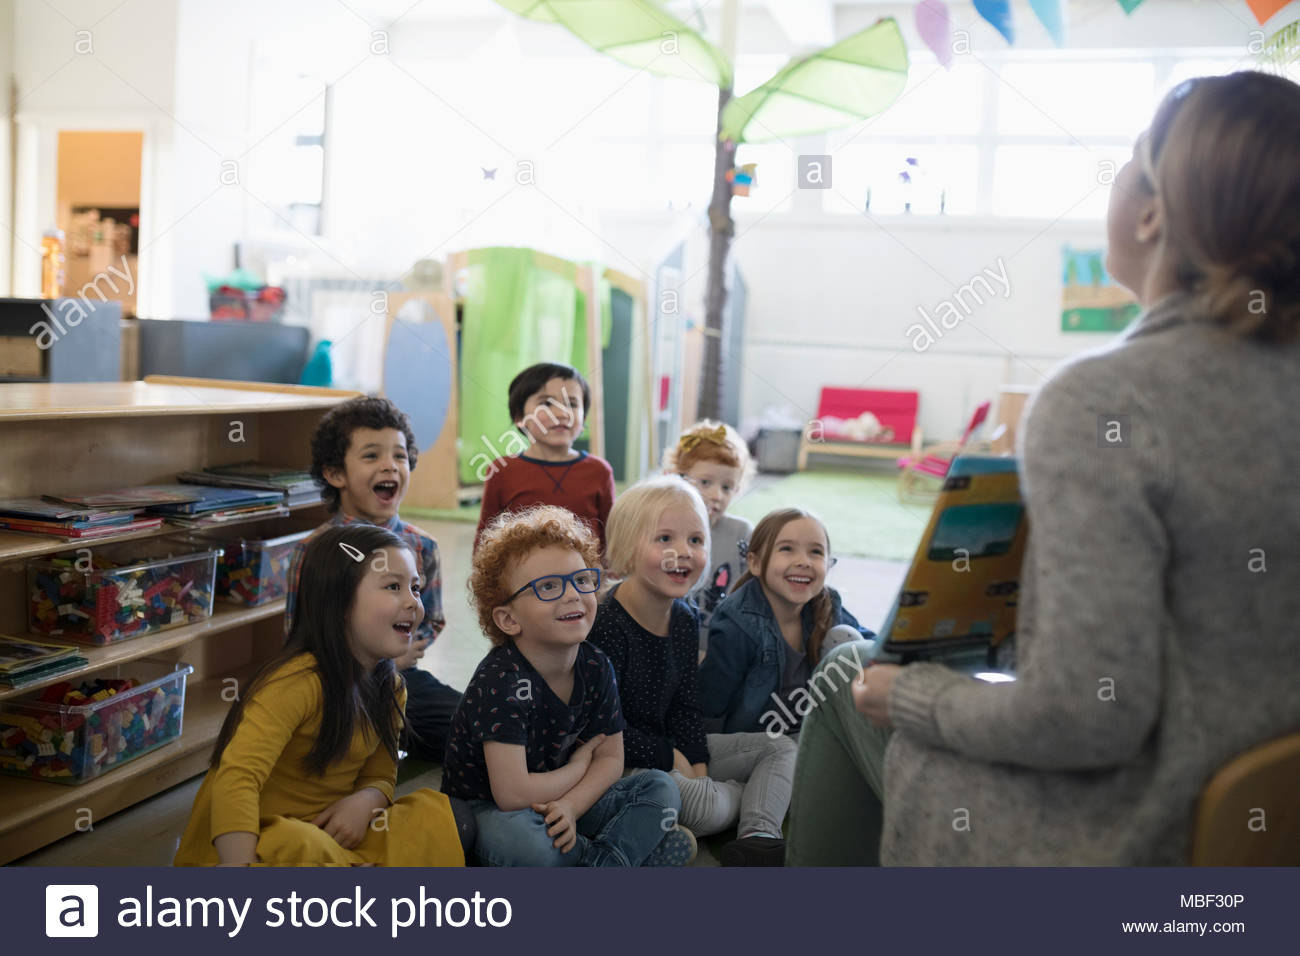 Preschool students listening to teacher reading book during story time in classroom - Stock Image